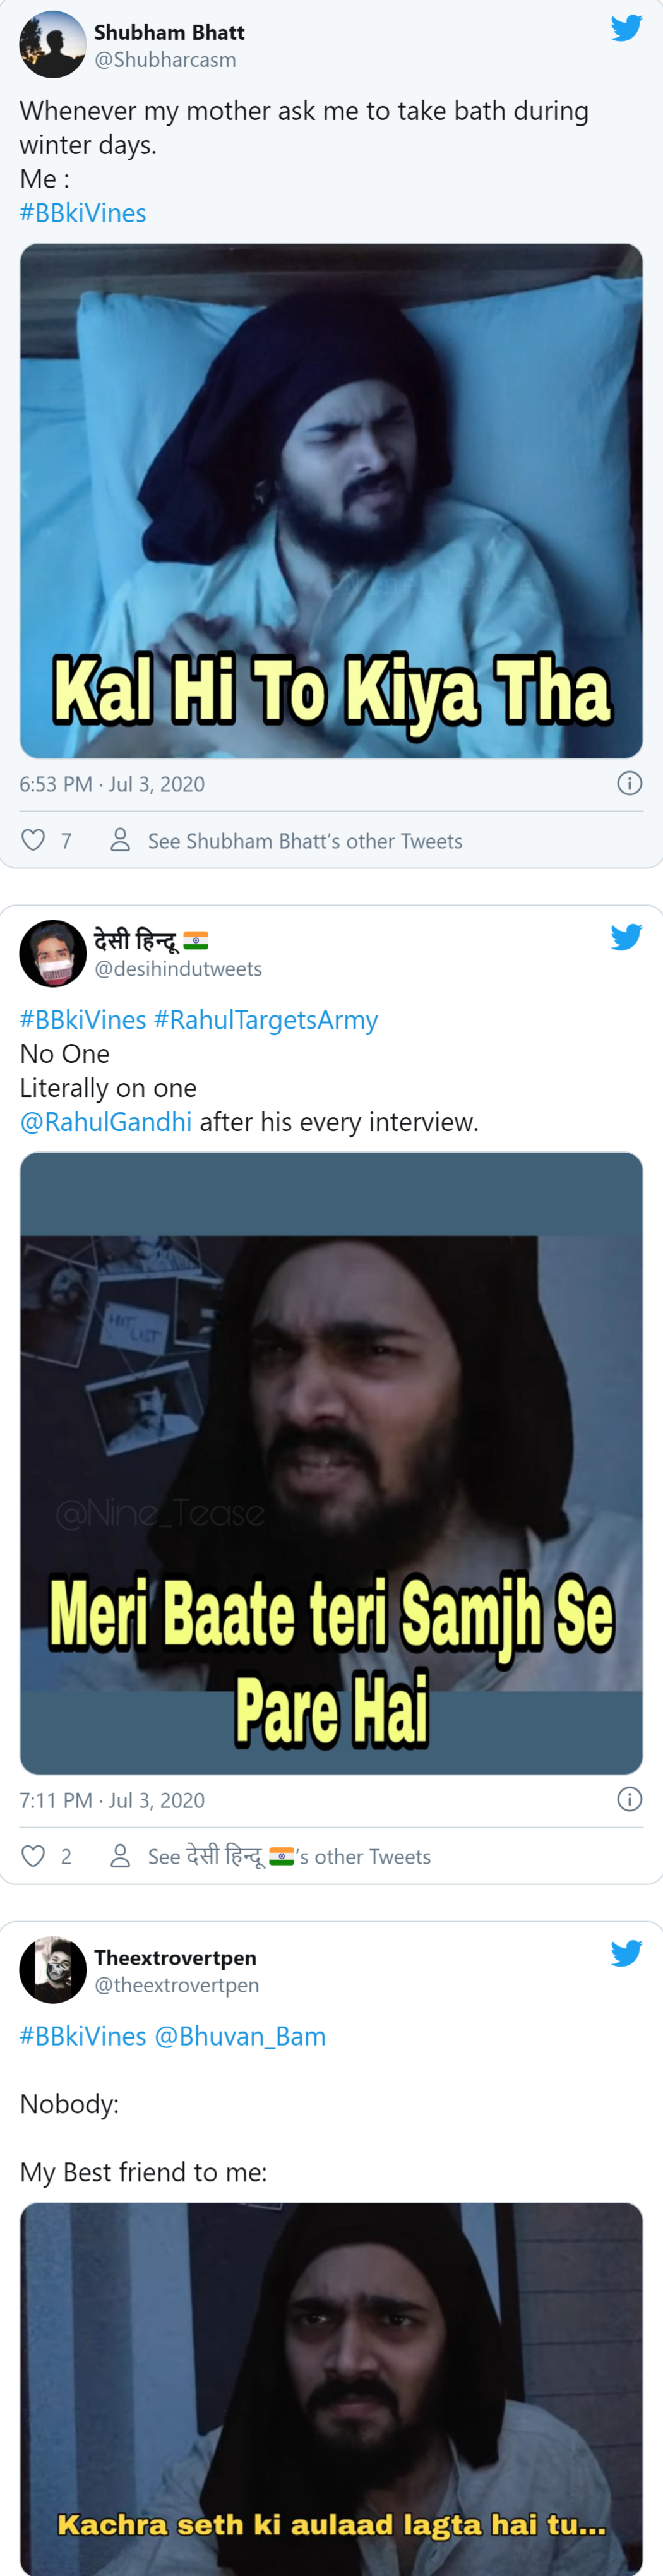 Sameer Vs Hola Bhuvan Bam S Video Loved By His Fans Netizens Comes Up With Bbkivines Memes Very Funny Memes Funny Memes Images Funny School Memes Browse the user profile and get inspired. very funny memes funny memes images